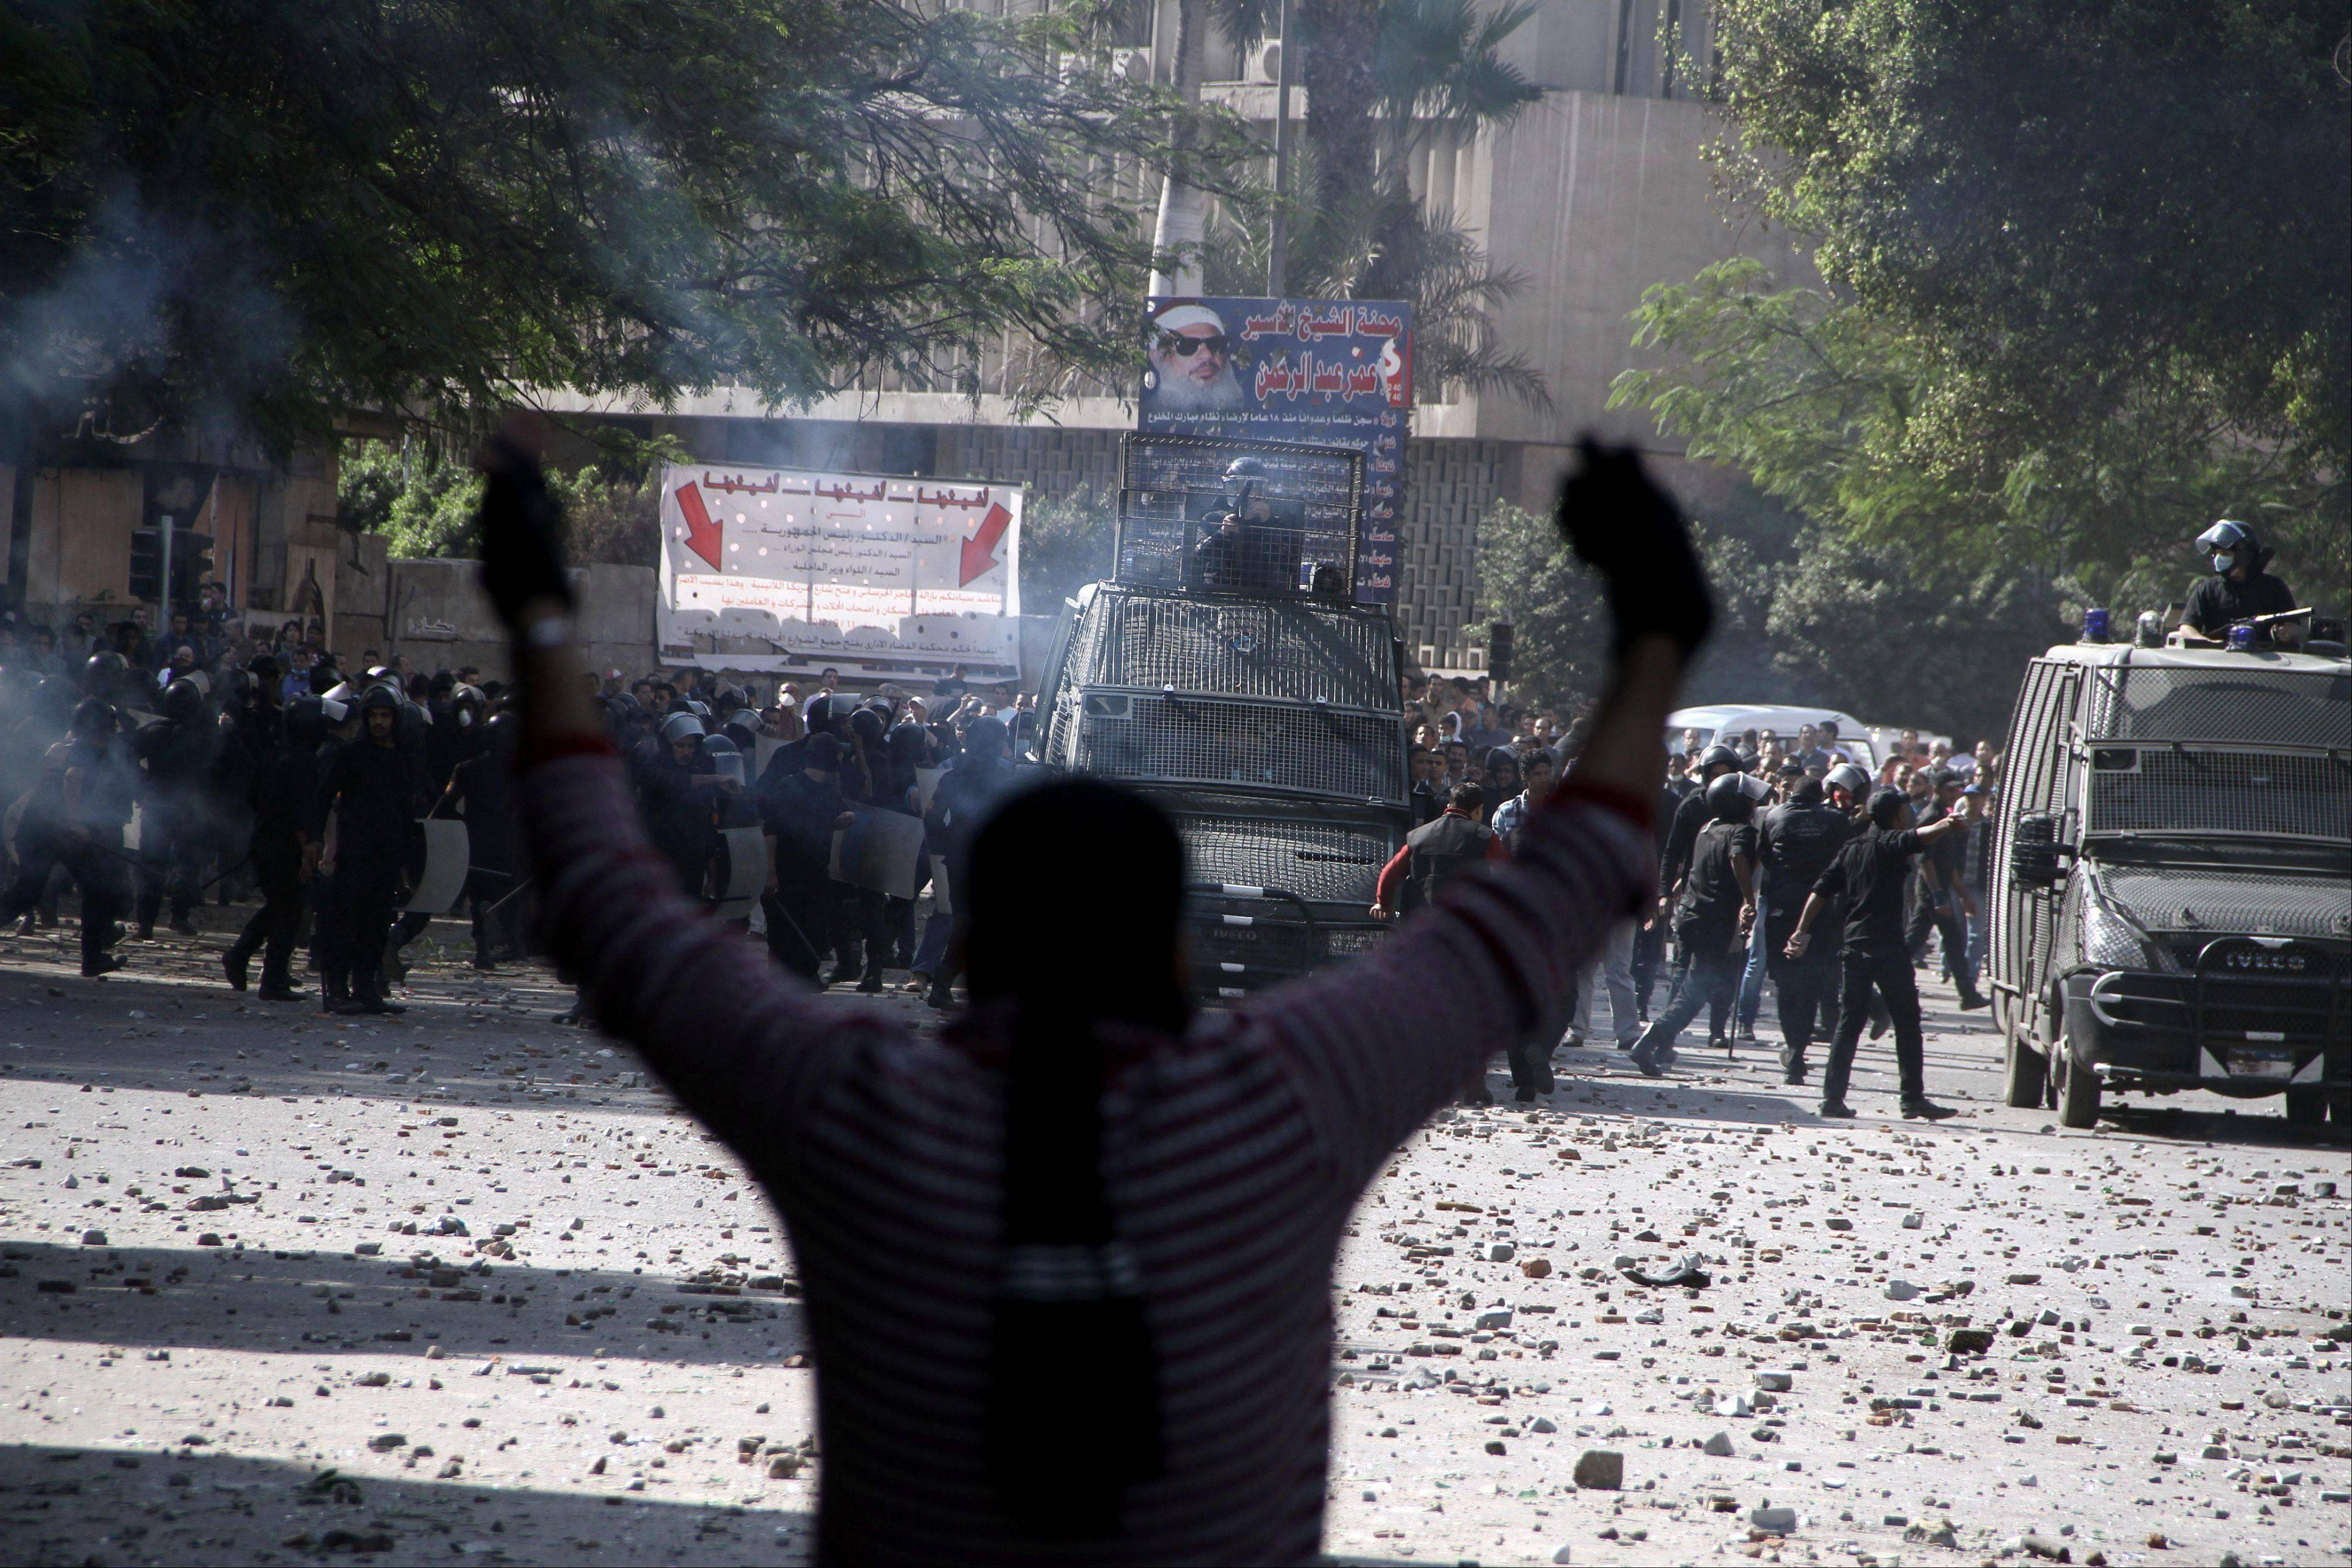 Egyptian security forces, background, clash with protesters near Tahrir Square in Cairo, Egypt, Sunday. Supporters and opponents of Egypt's president grow more entrenched in their potentially destabilizing battle over the Islamist leader's move to give himself near absolute powers, with neither side appearing willing to back down.